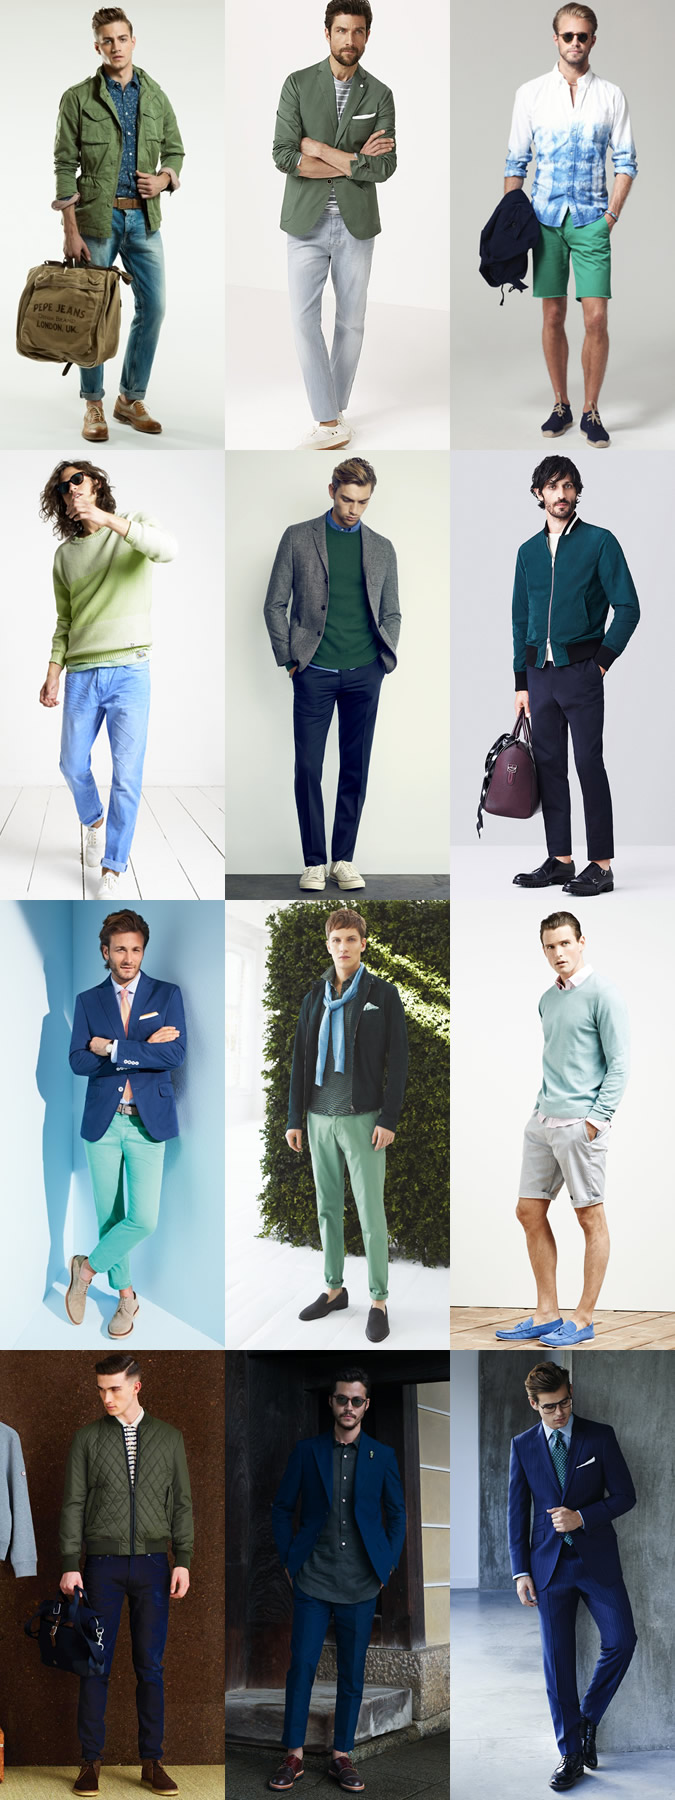 Men's Blue and Green Spring/Summer Outfit Inspiration Lookbook